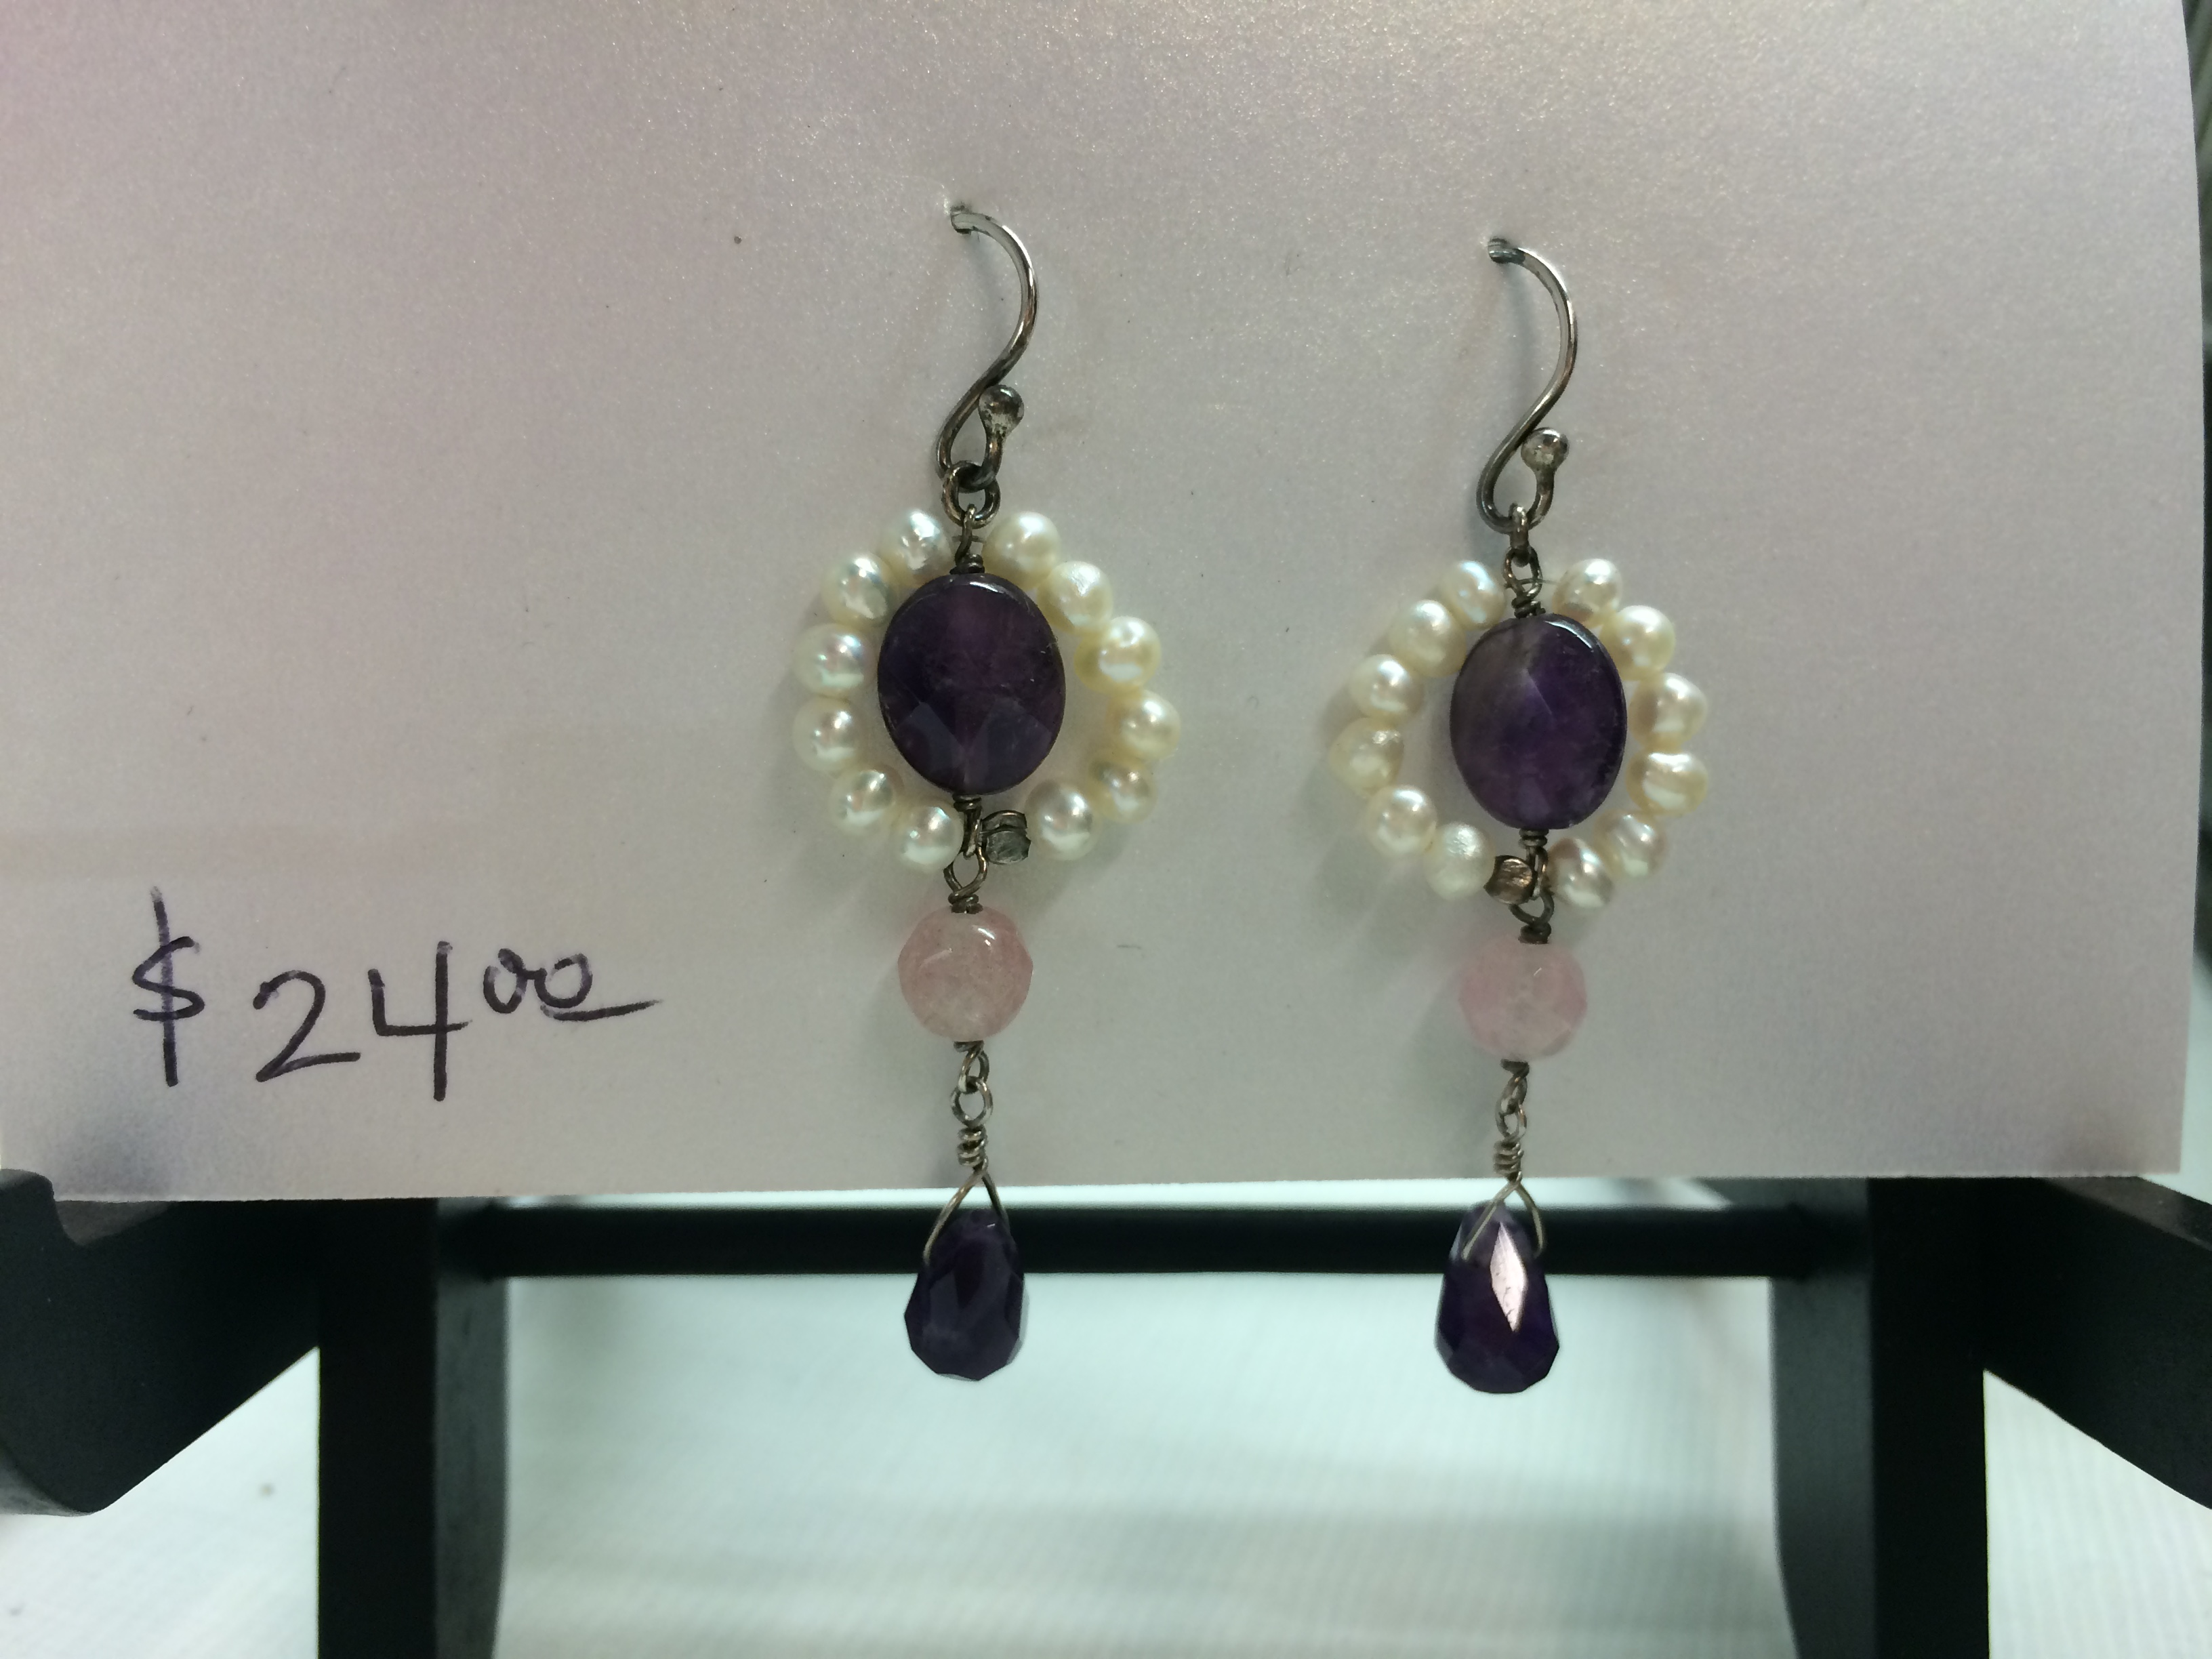 Seed pearl and amethyst dangle earrings